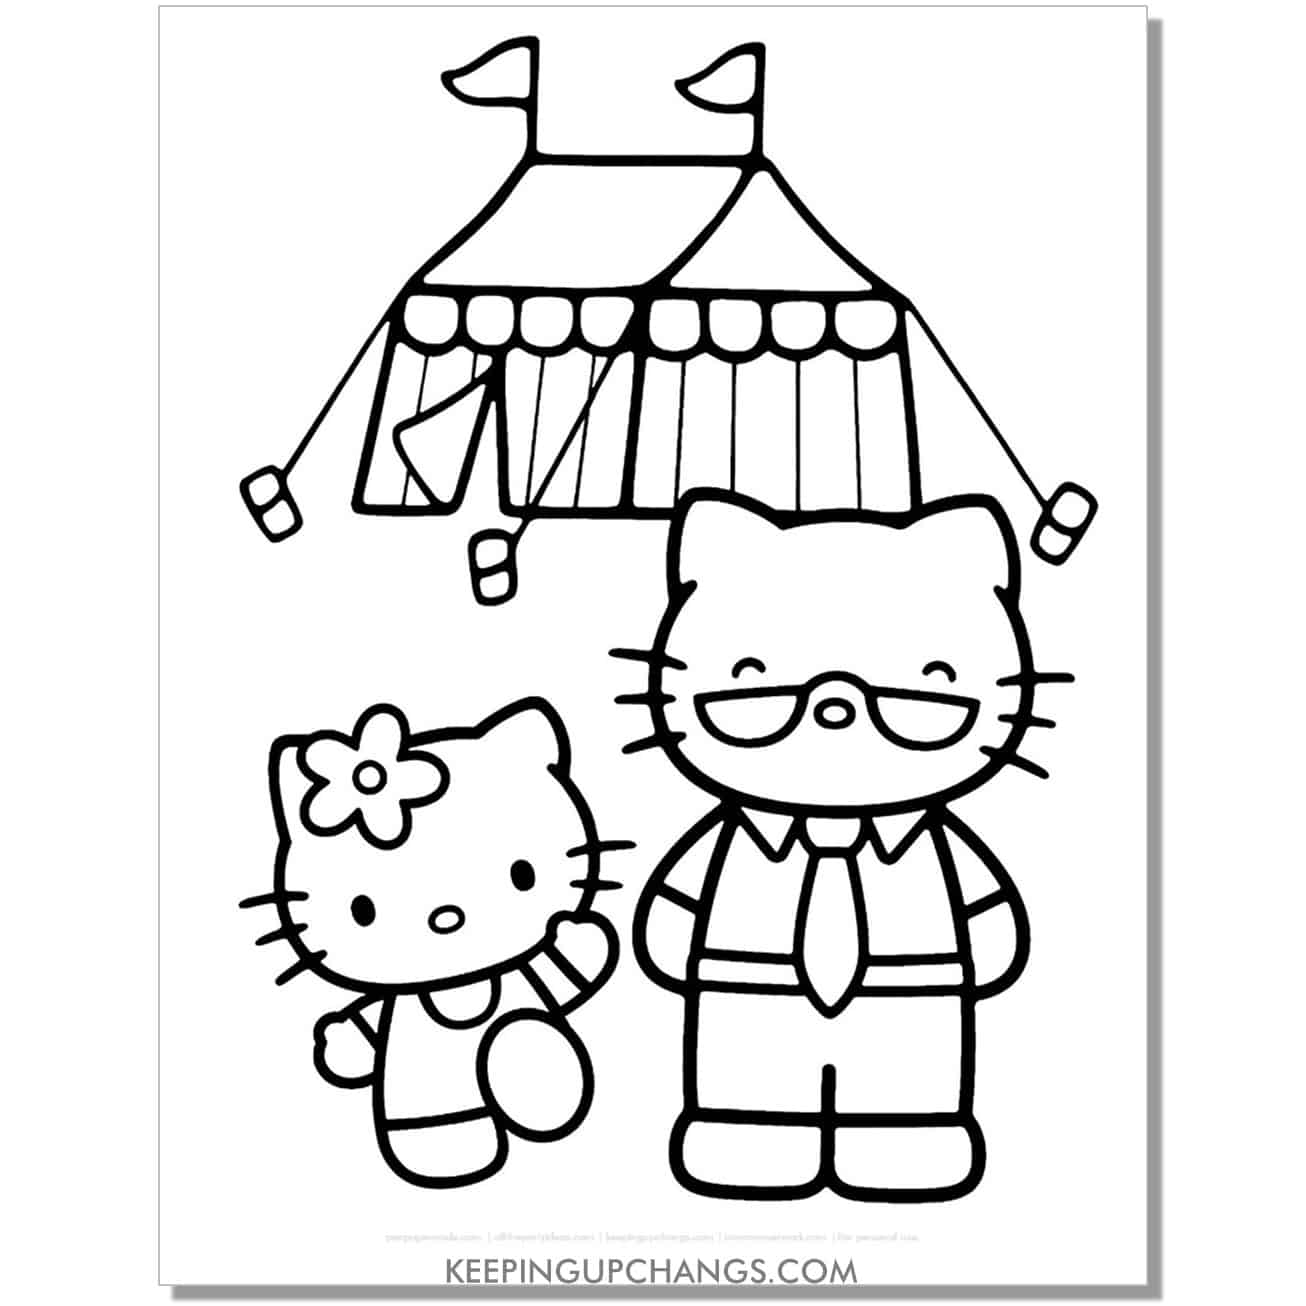 outdoor carnival fair hello kitty coloring page.